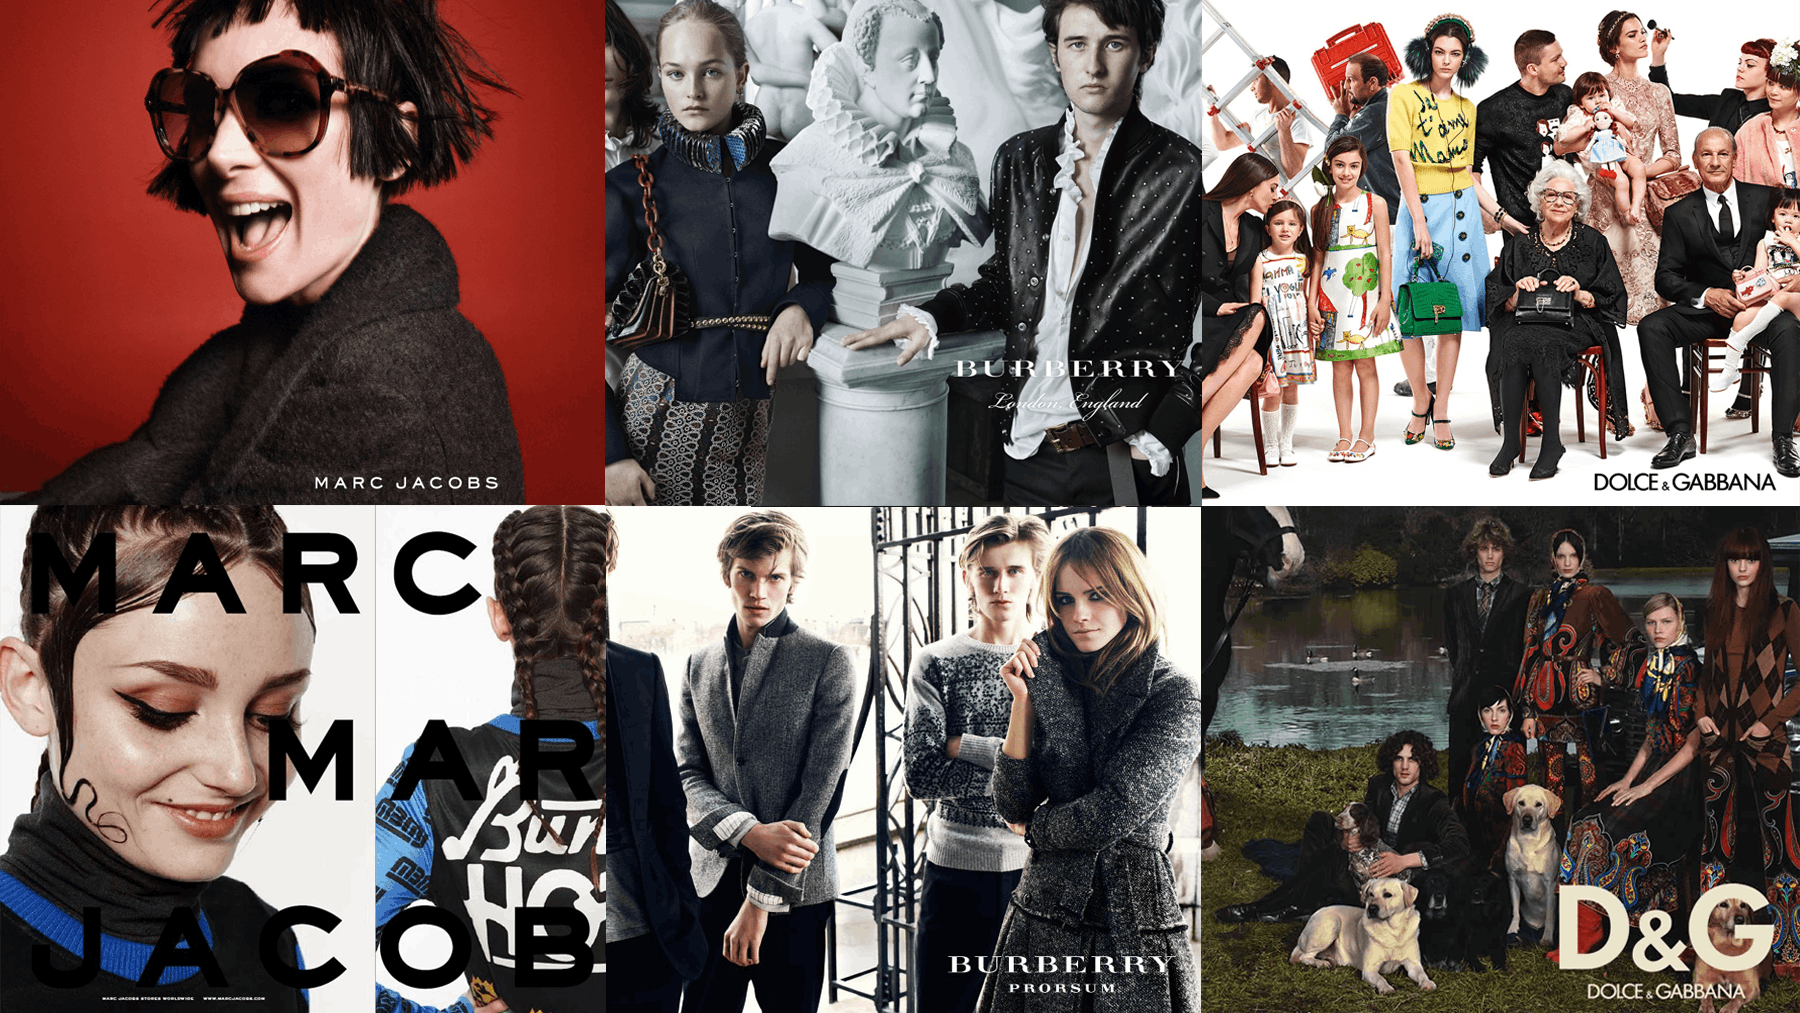 Campaign images clockwise from top left: Marc Jacobs, Burberry, Dolce & Gabbana, D&G, Burberry Prorsum, Marc by Marc Jacobs | Source: Courtesy